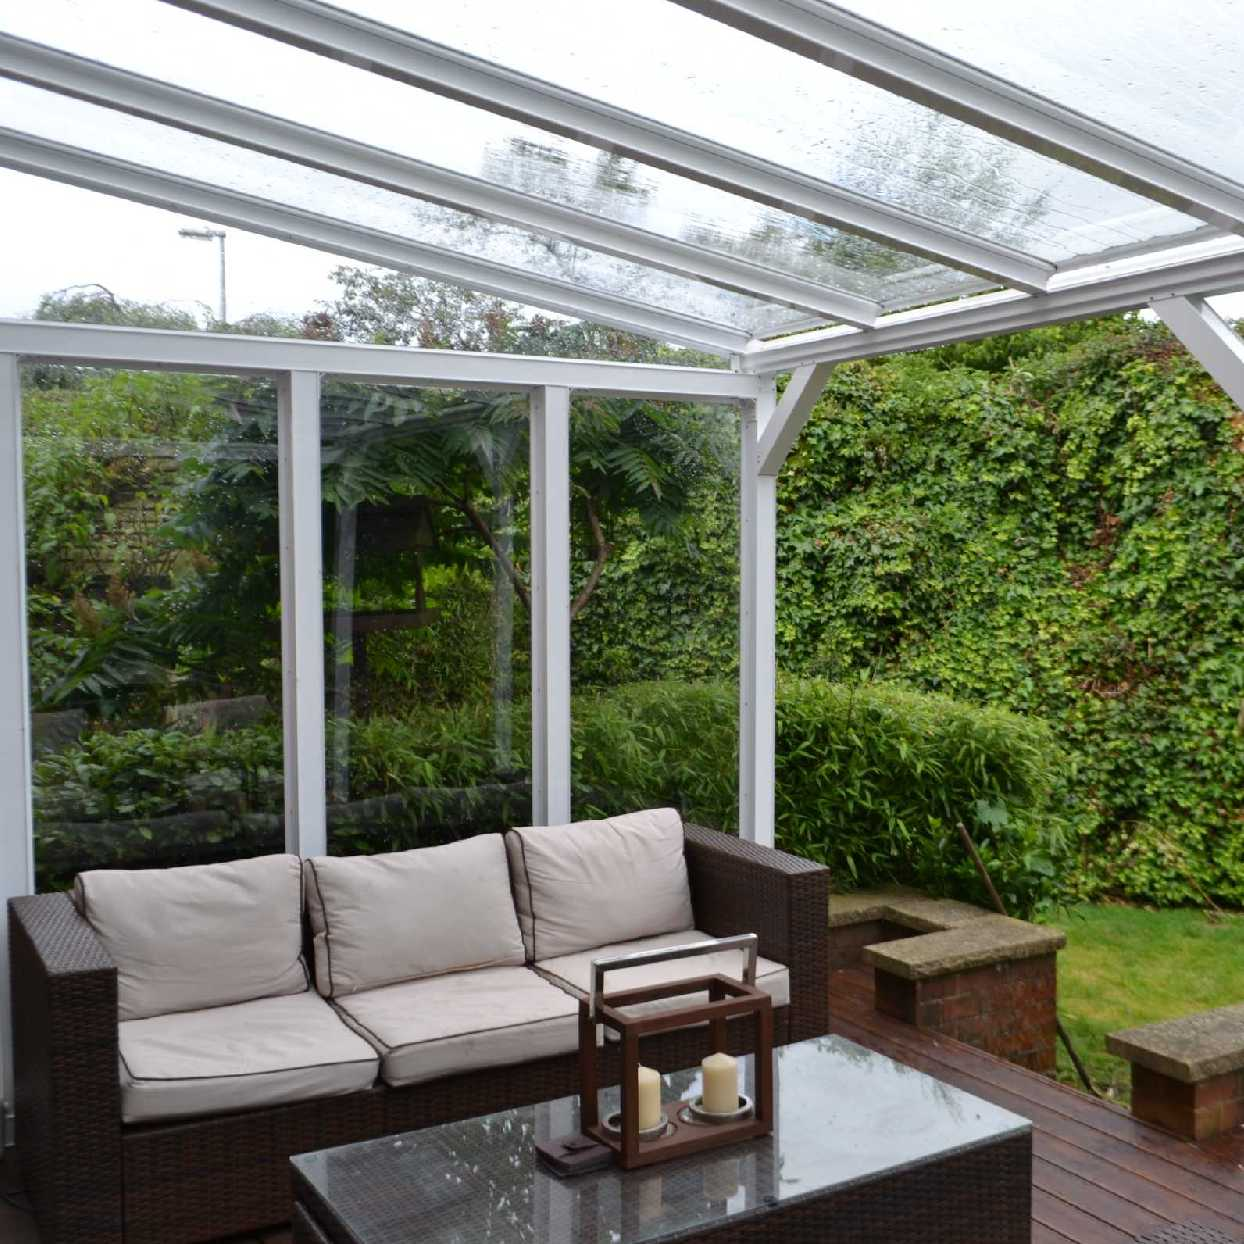 Omega Smart White Lean-To Canopy with 6mm Glass Clear Plate Polycarbonate Glazing - 2.1m (W) x 2.0m (P), (2) Supporting Posts